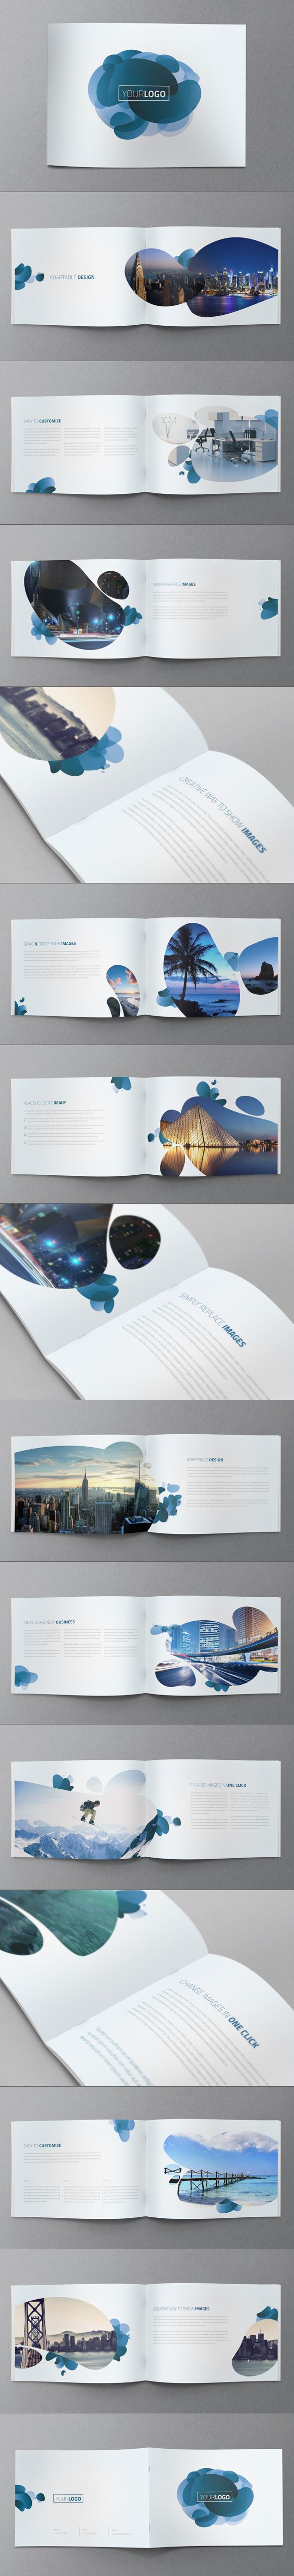 pinterest.com/fra411 #print - Abstract Brochure Design by Abra Design, via Behance